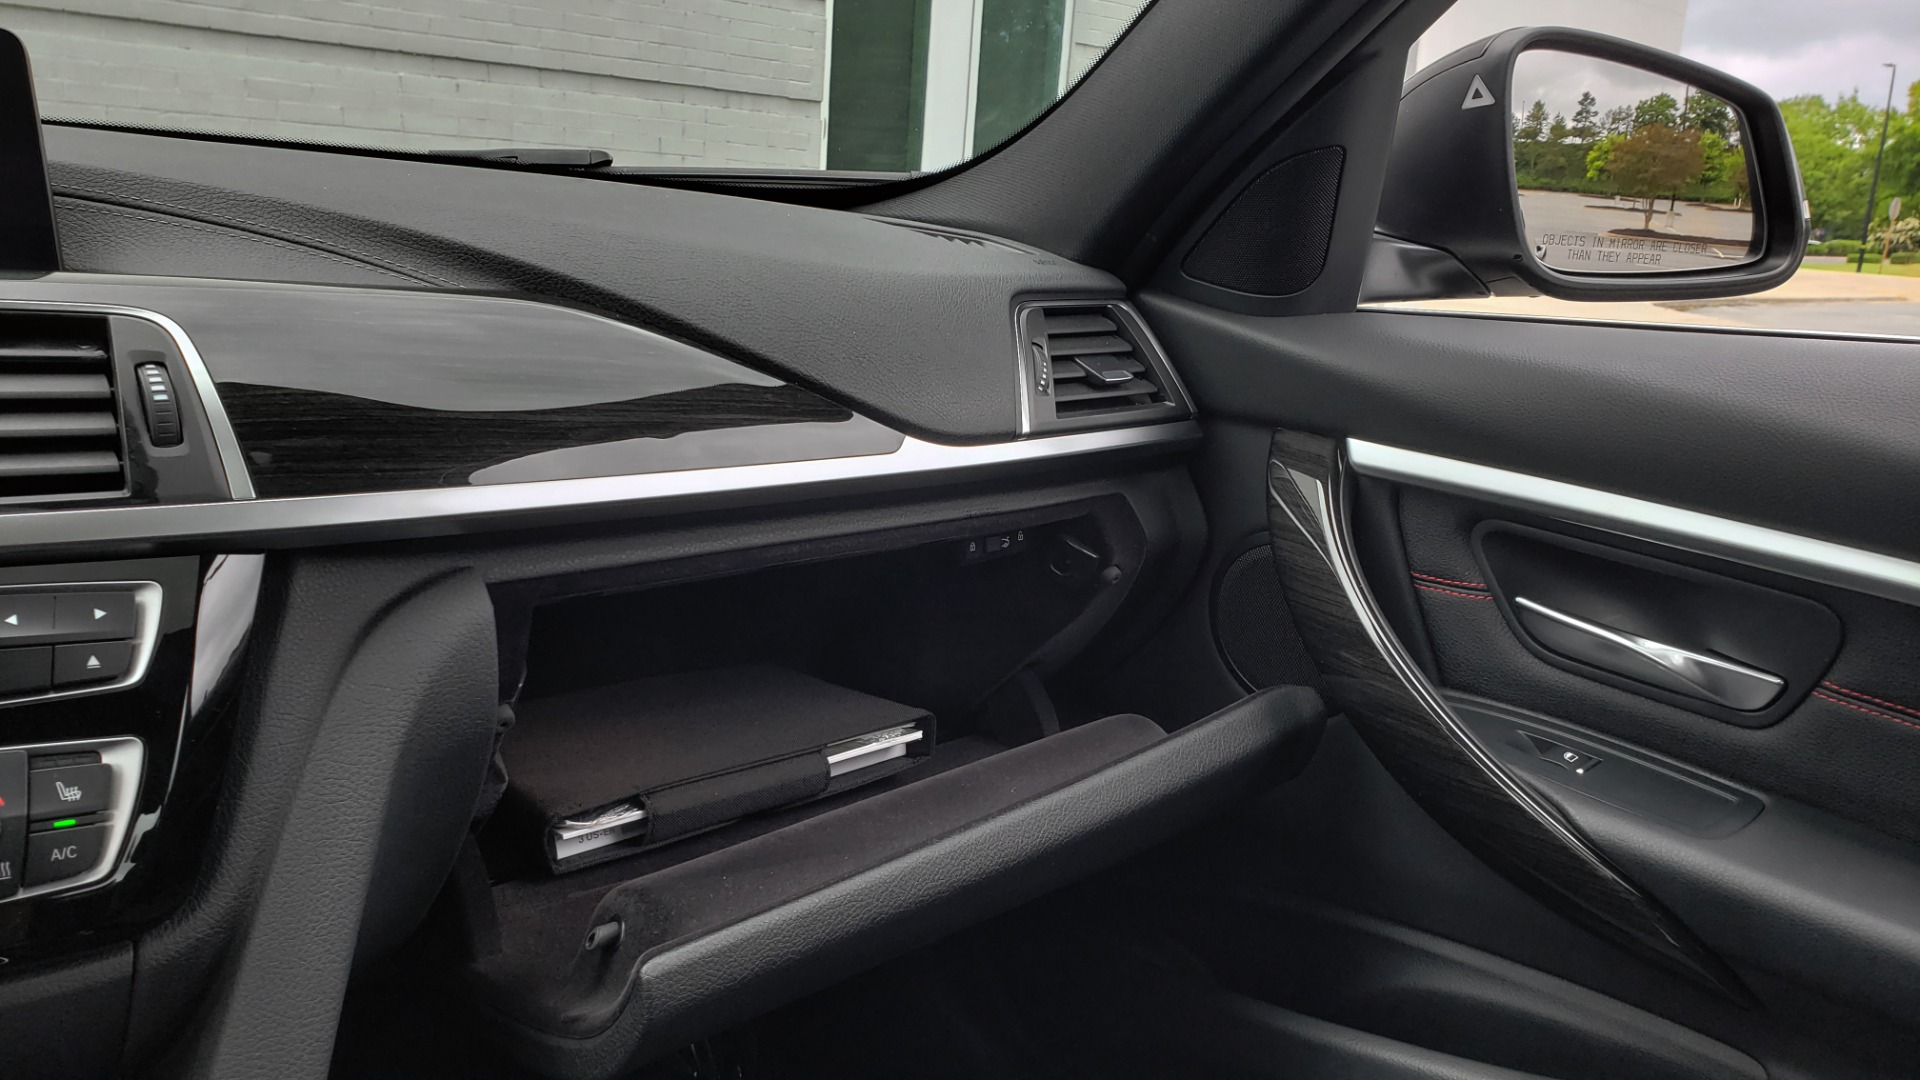 Used 2018 BMW 3 SERIES 330IXDRIVE / CONV PKG / NAV / SUNROOF / HTD STS / REARVIEW for sale $26,552 at Formula Imports in Charlotte NC 28227 51